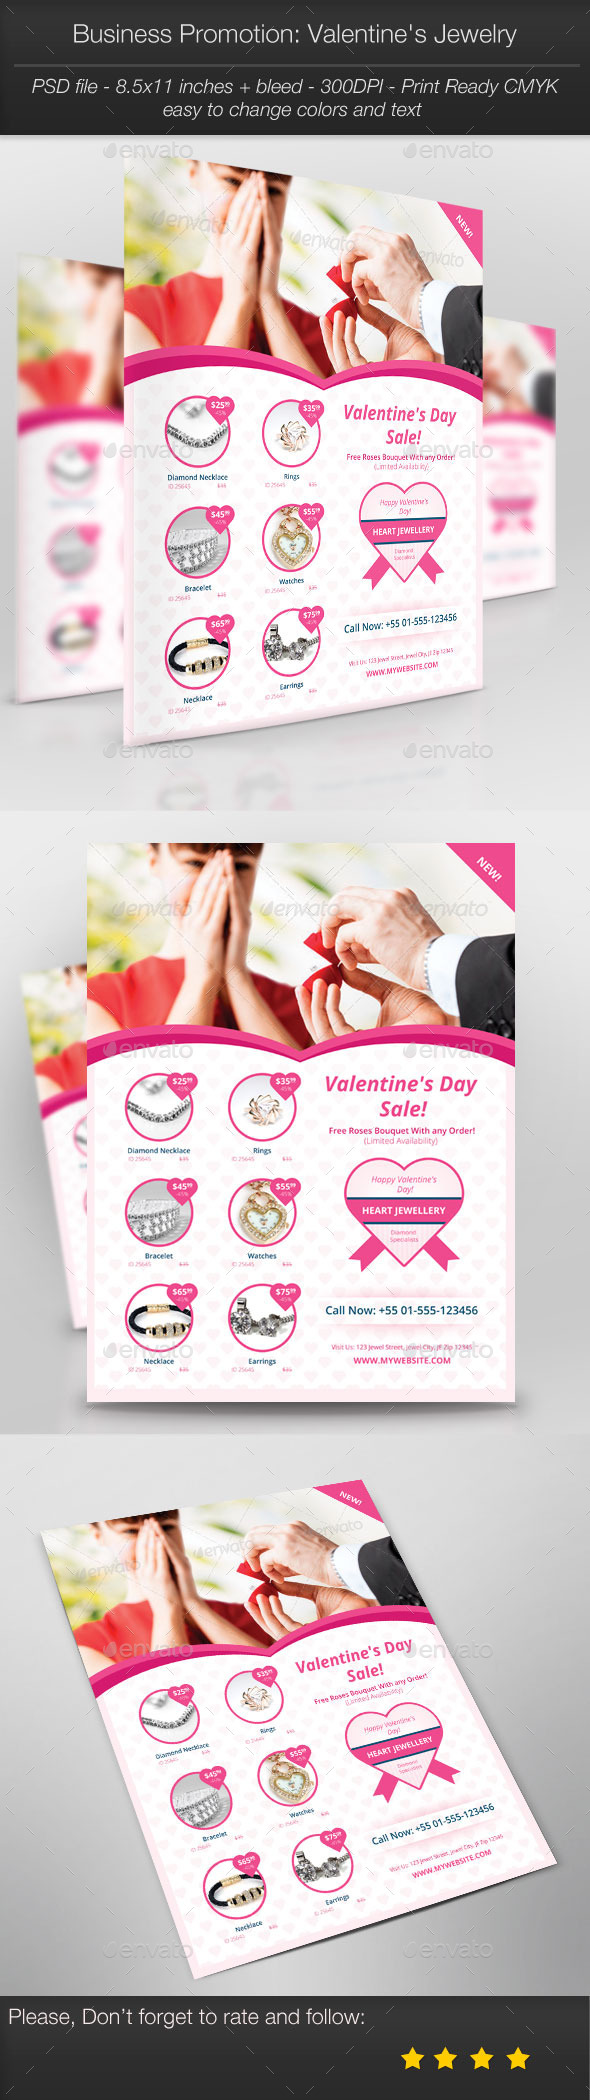 GraphicRiver Business Promotion Valentine s Jewelry 10278857